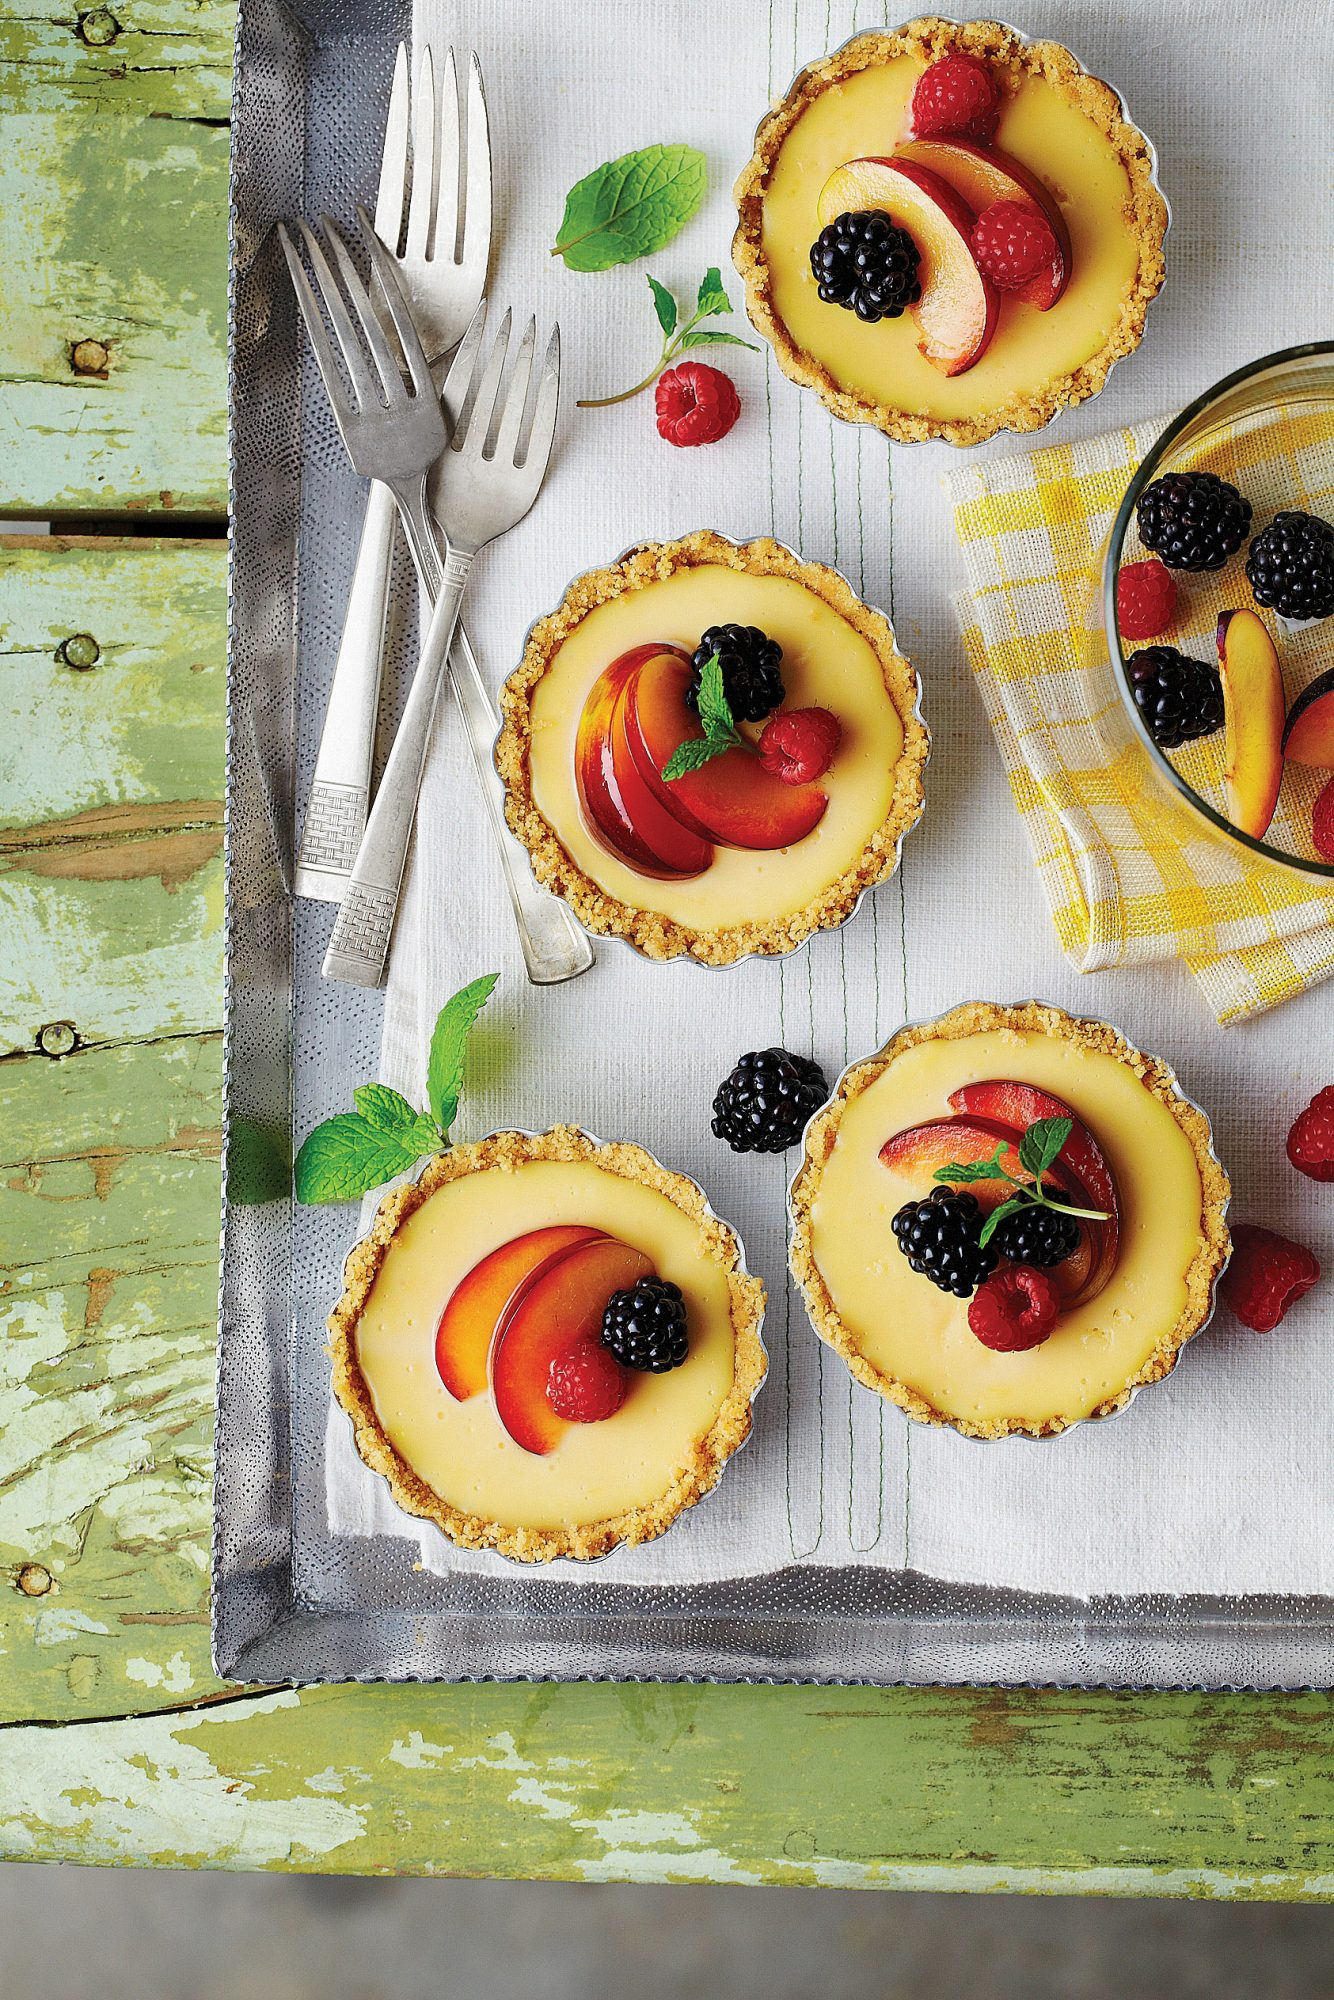 Lemon-Mascarpone Icebox Tarts